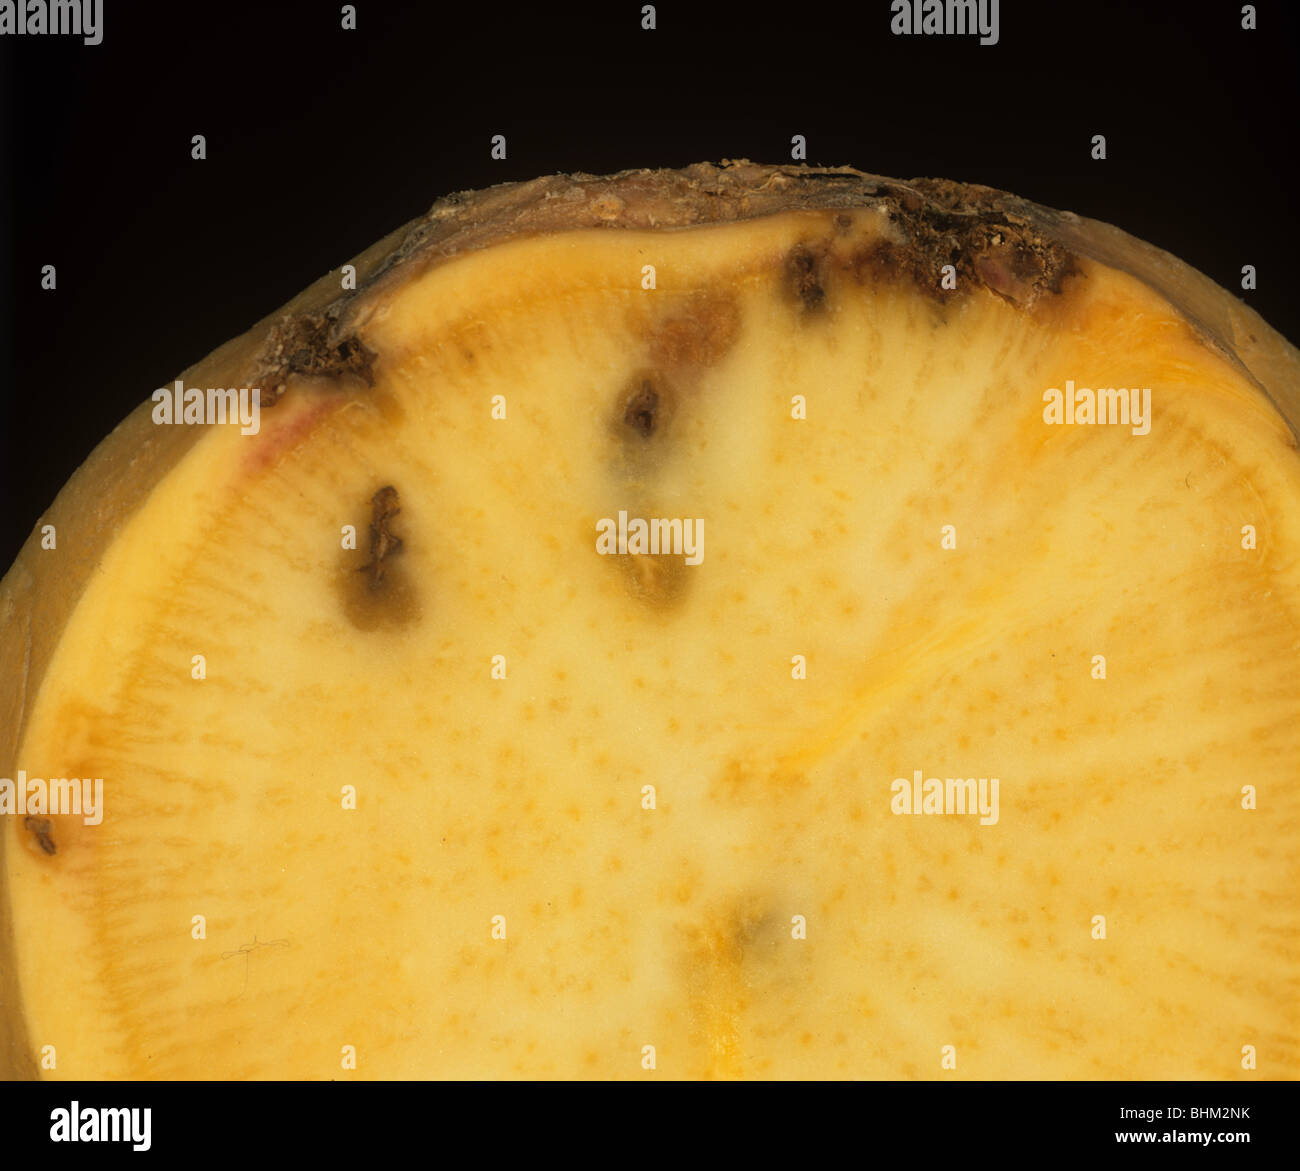 Wireworm (agriotes sp.) feeding damage shown in a cross section of a parsnip root - Stock Image